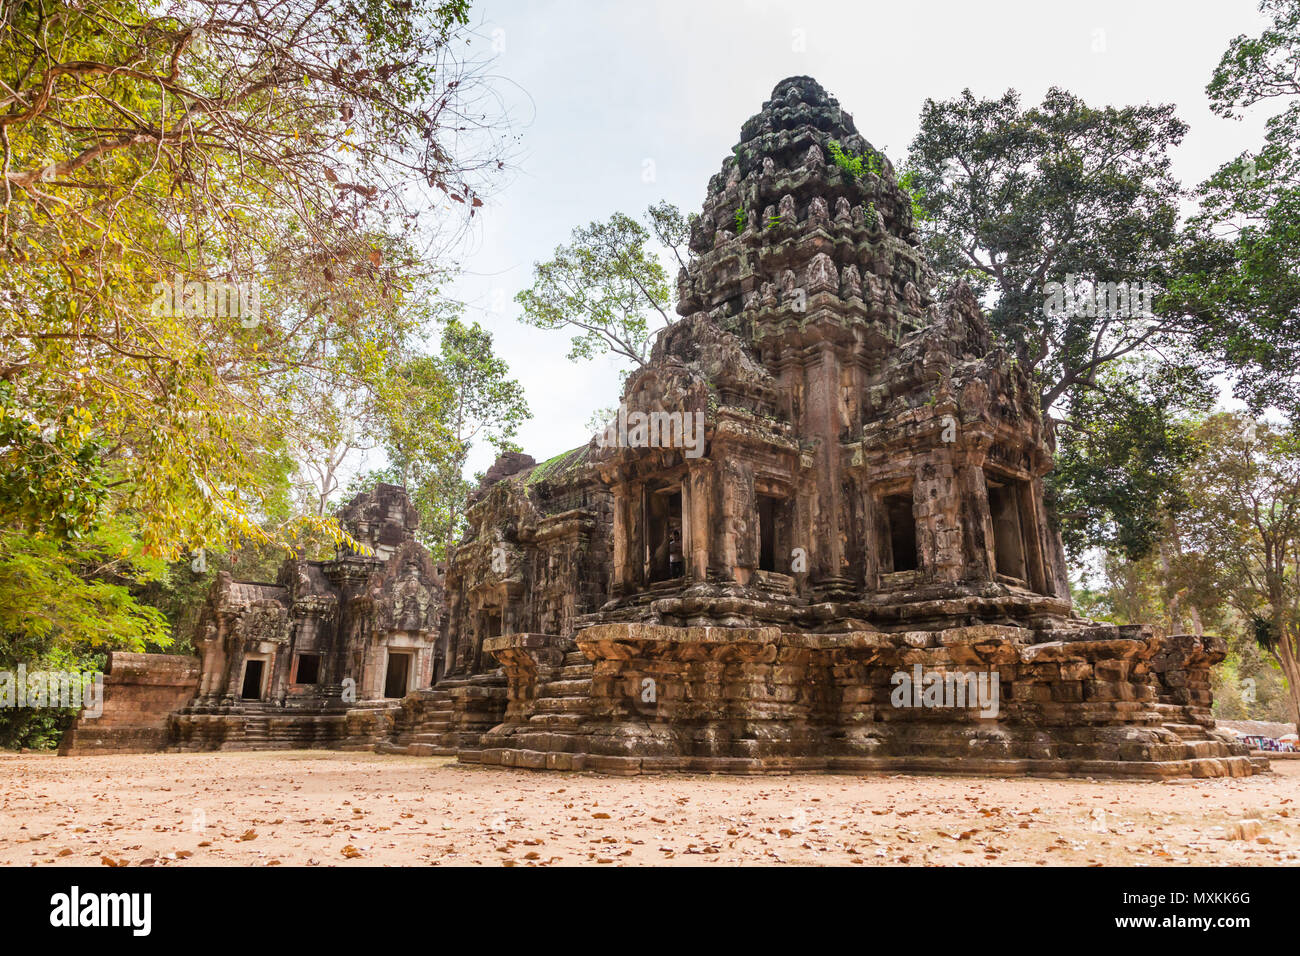 SIEM REAP - JANUARY 04, 2015: Historic ruins with ornate stone carvings at Angkor complex on january 04, 2015 in Siem Reap, Cambodia. - Stock Image